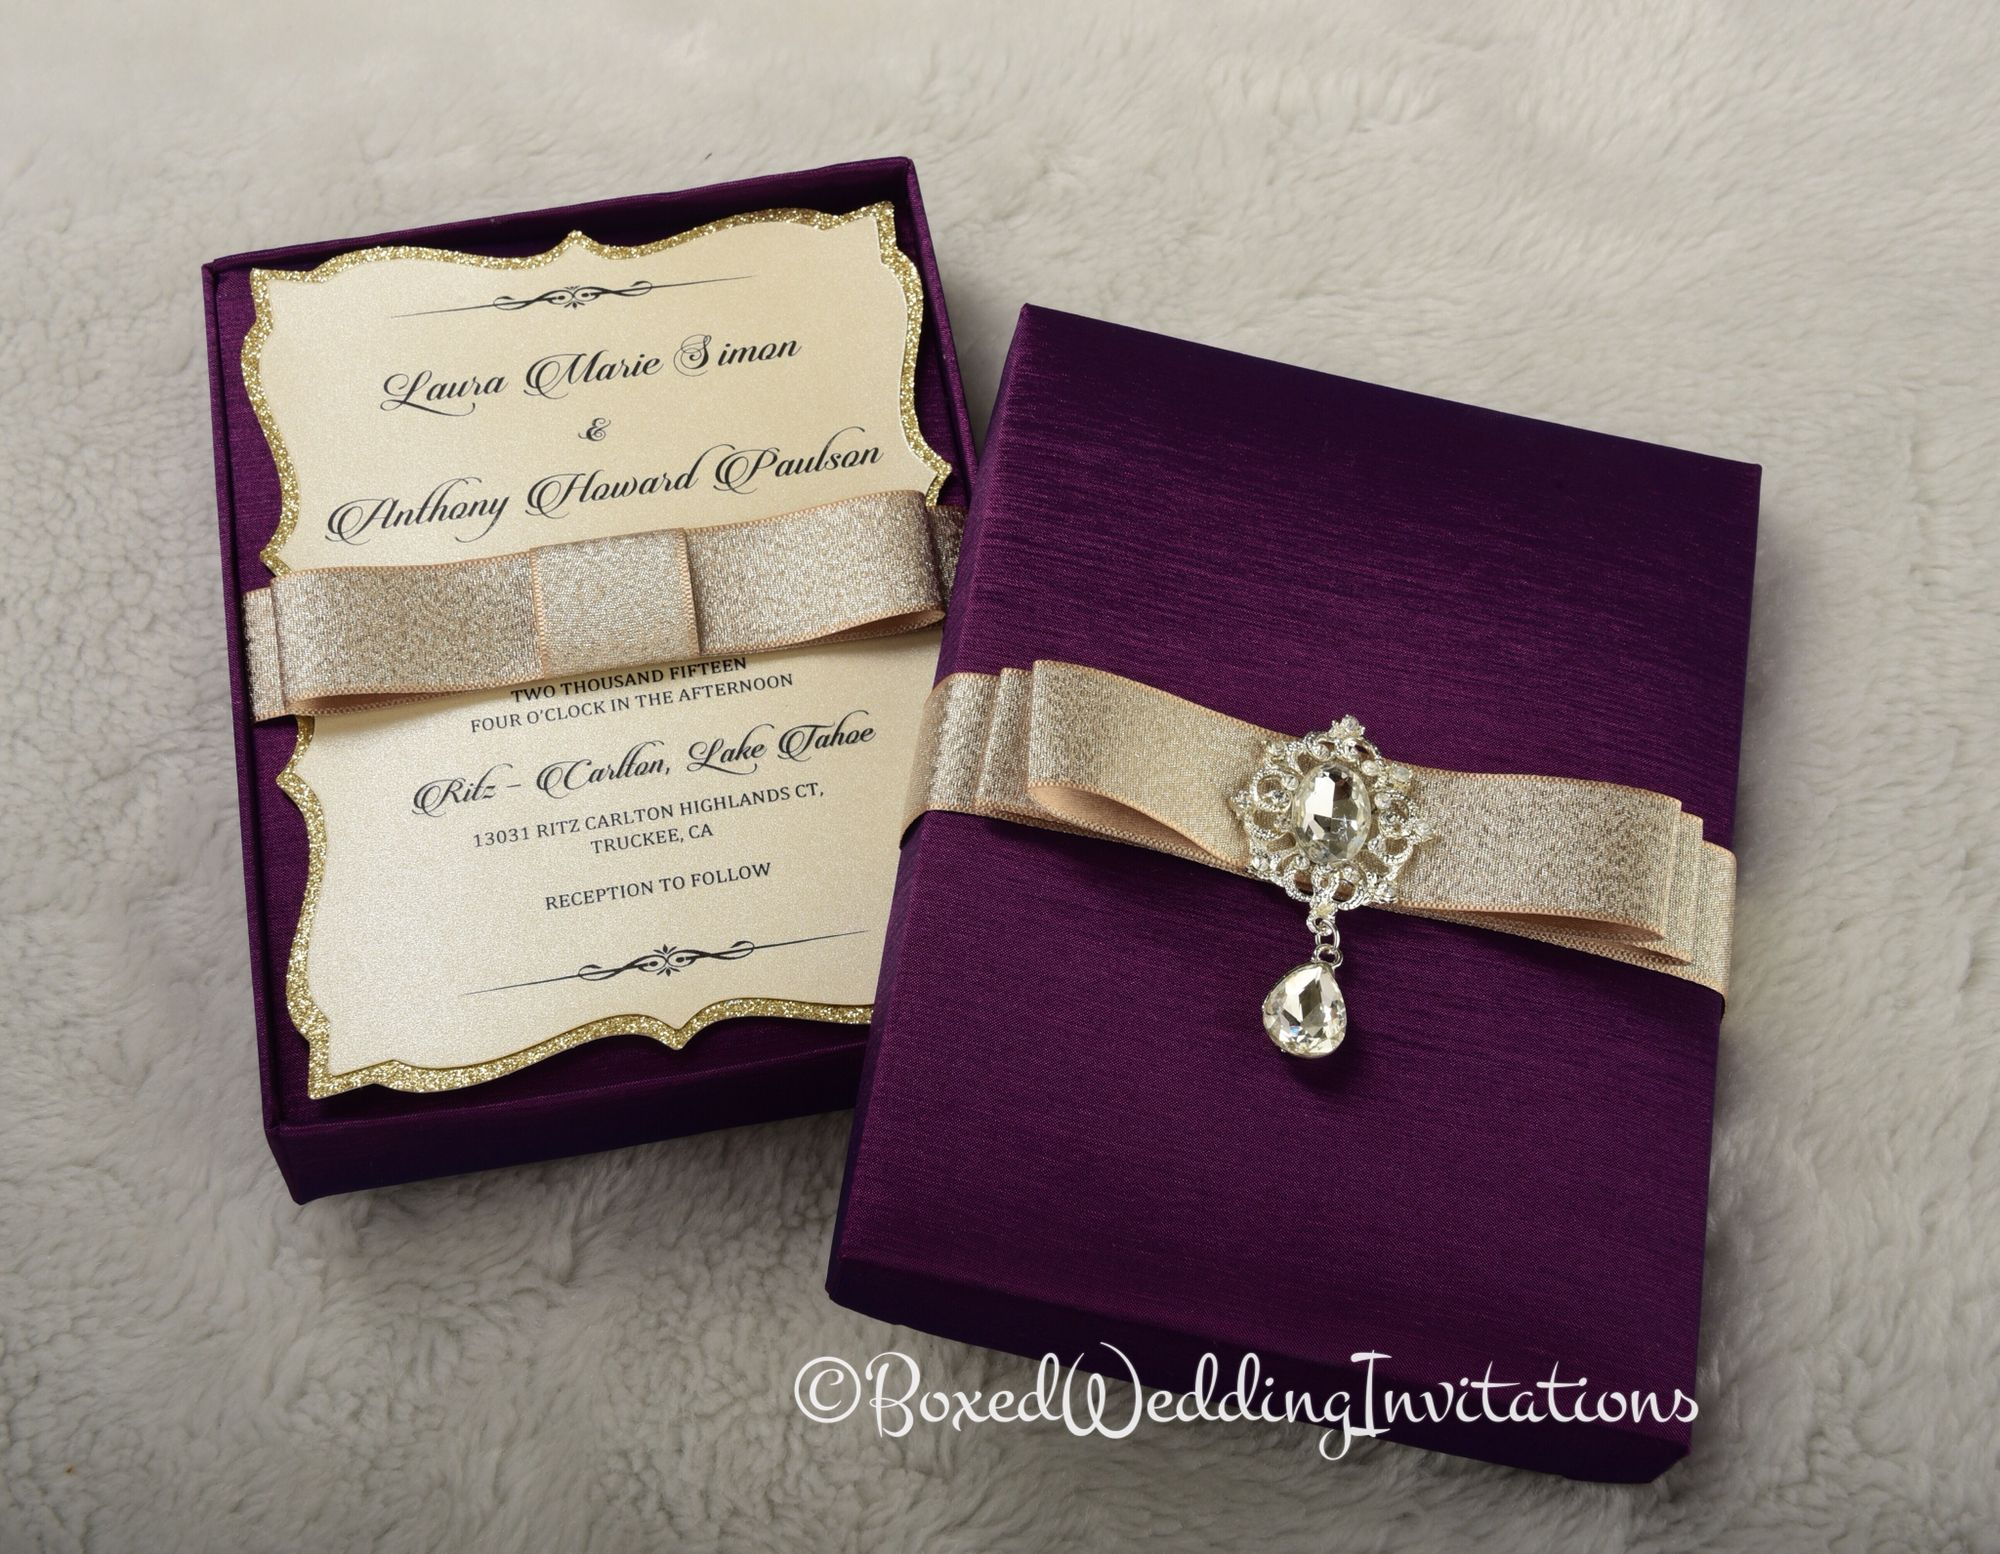 wedding card invitation cards online%0A Announce your event with elegance and style by starting with custommade  luxury invitations that reflect your style and personality